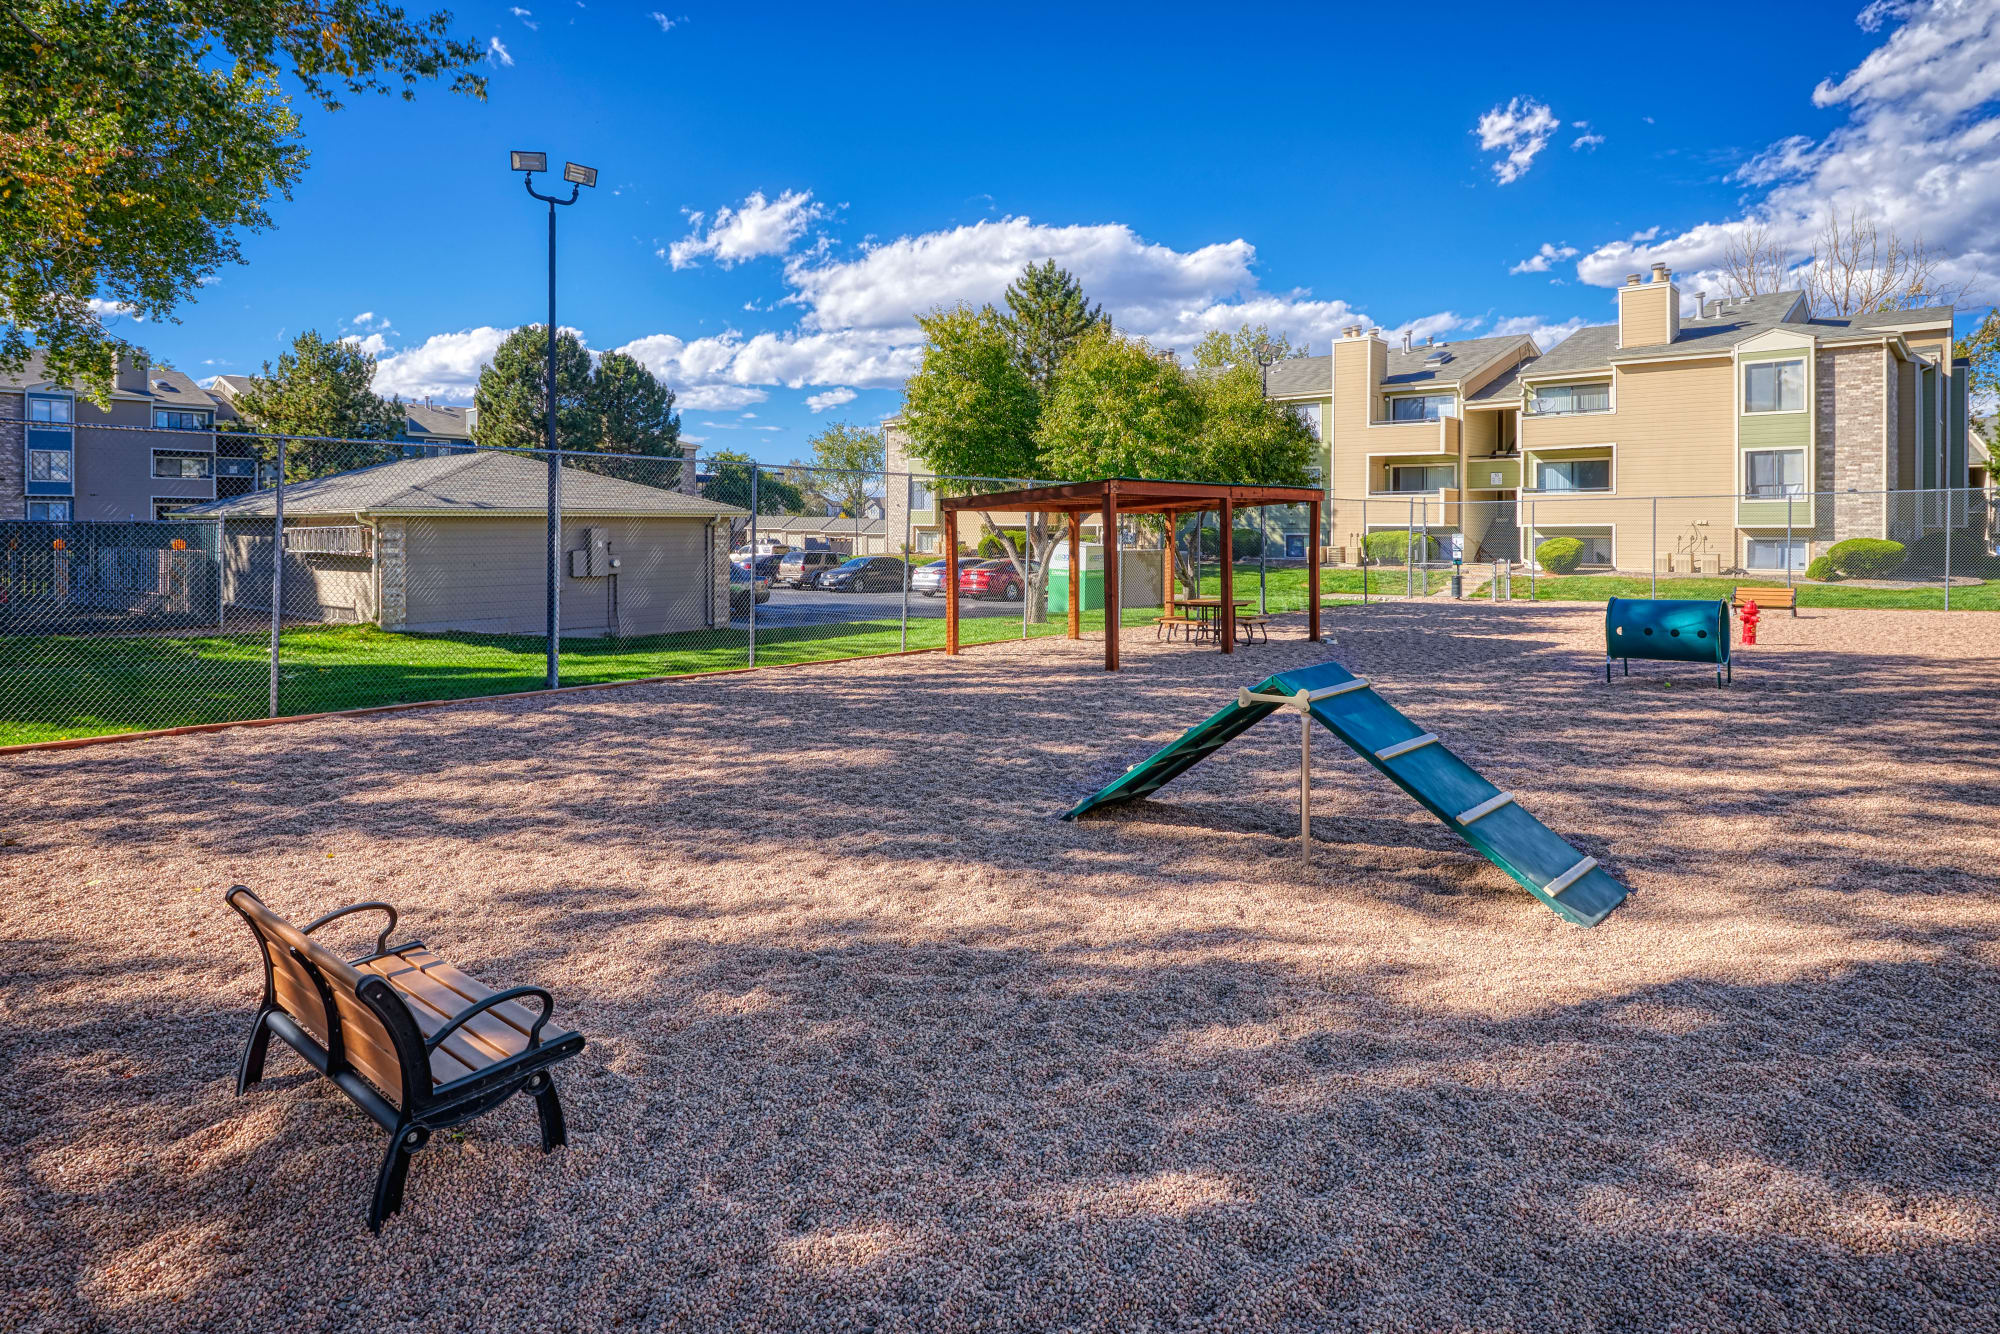 Dog Park at Alton Green Apartments in Denver, CO